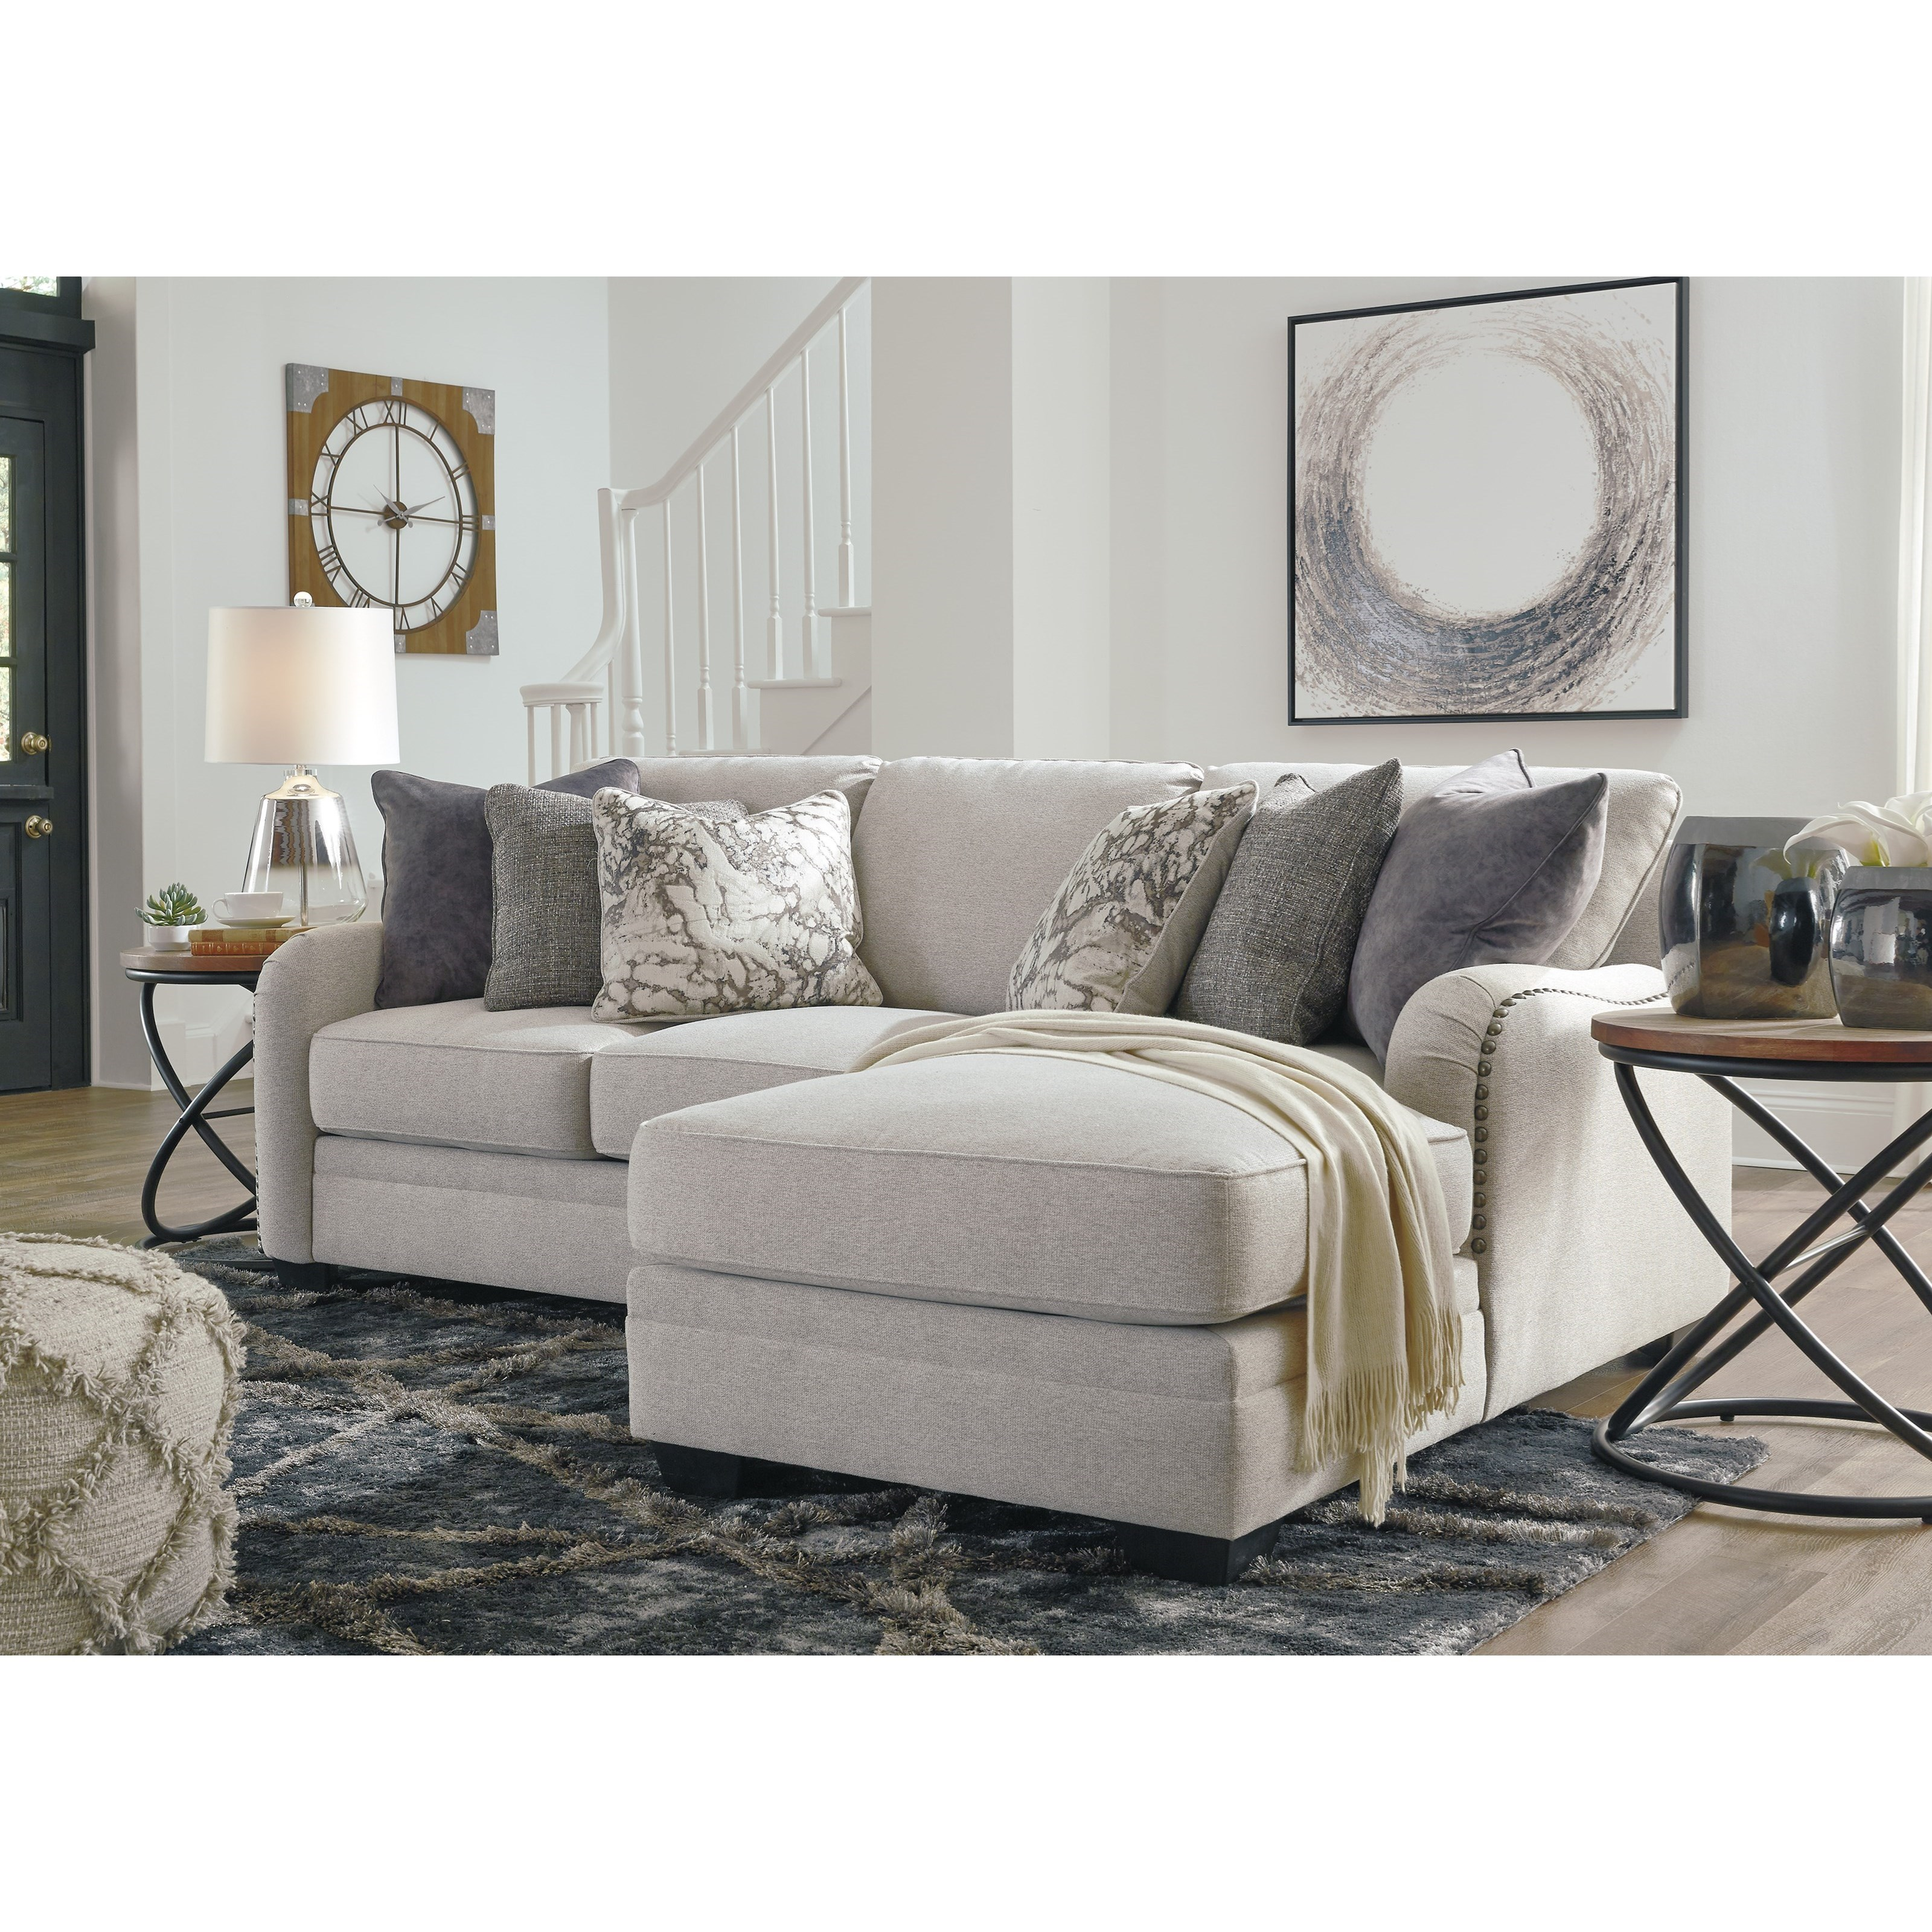 Dellara 2-Piece Sectional by Benchcraft at Northeast Factory Direct